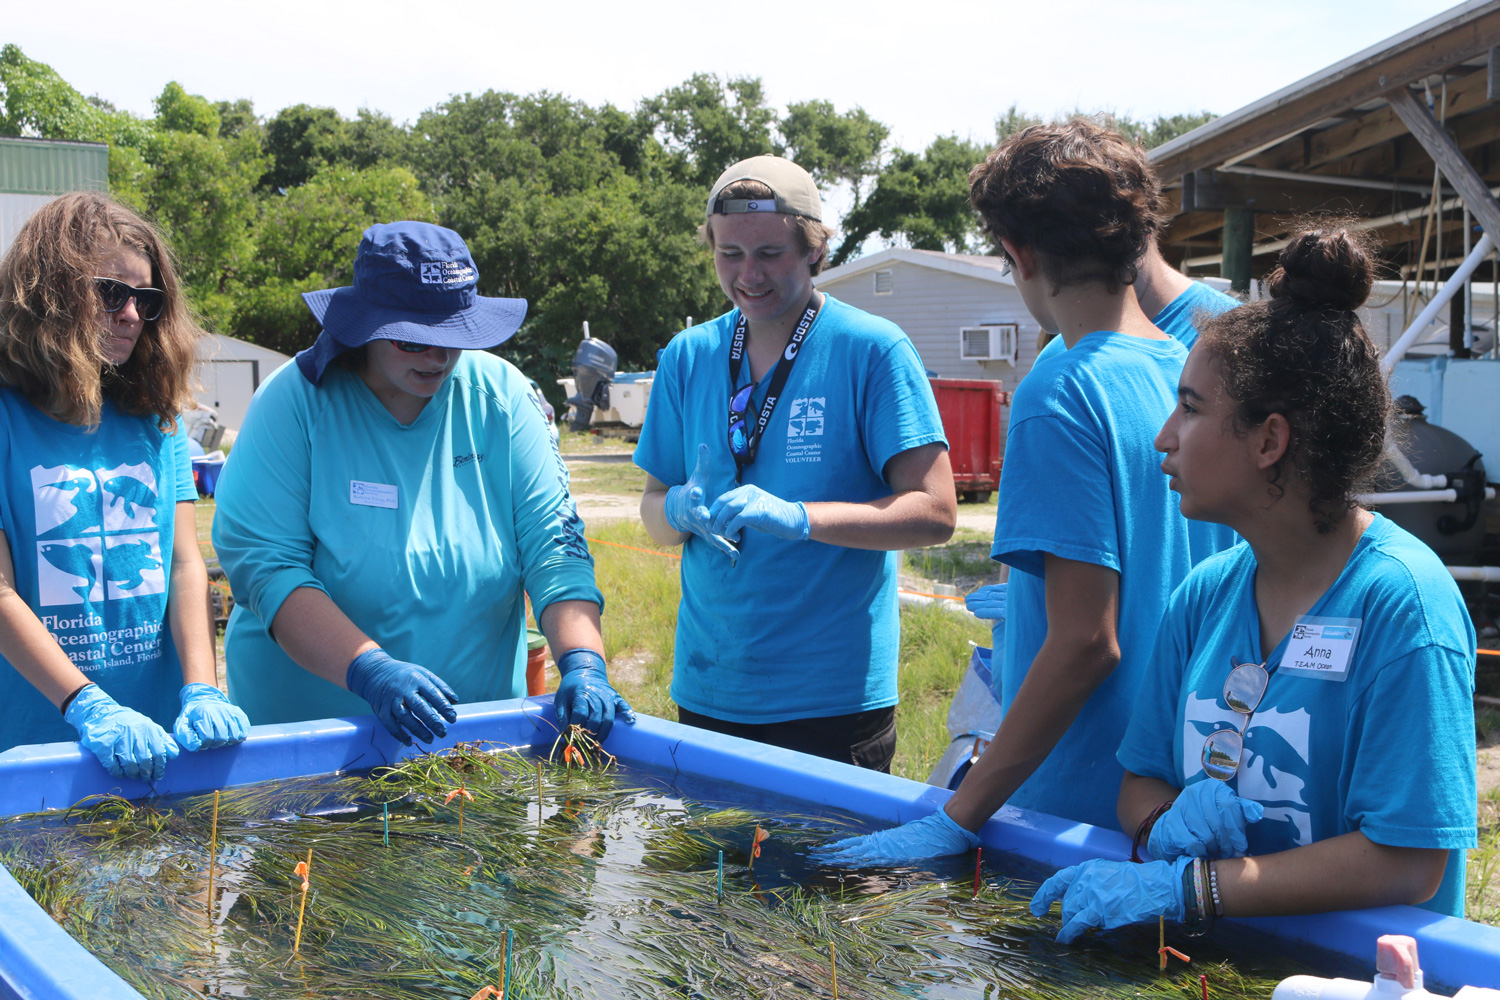 Team ocean students learning about seagrass